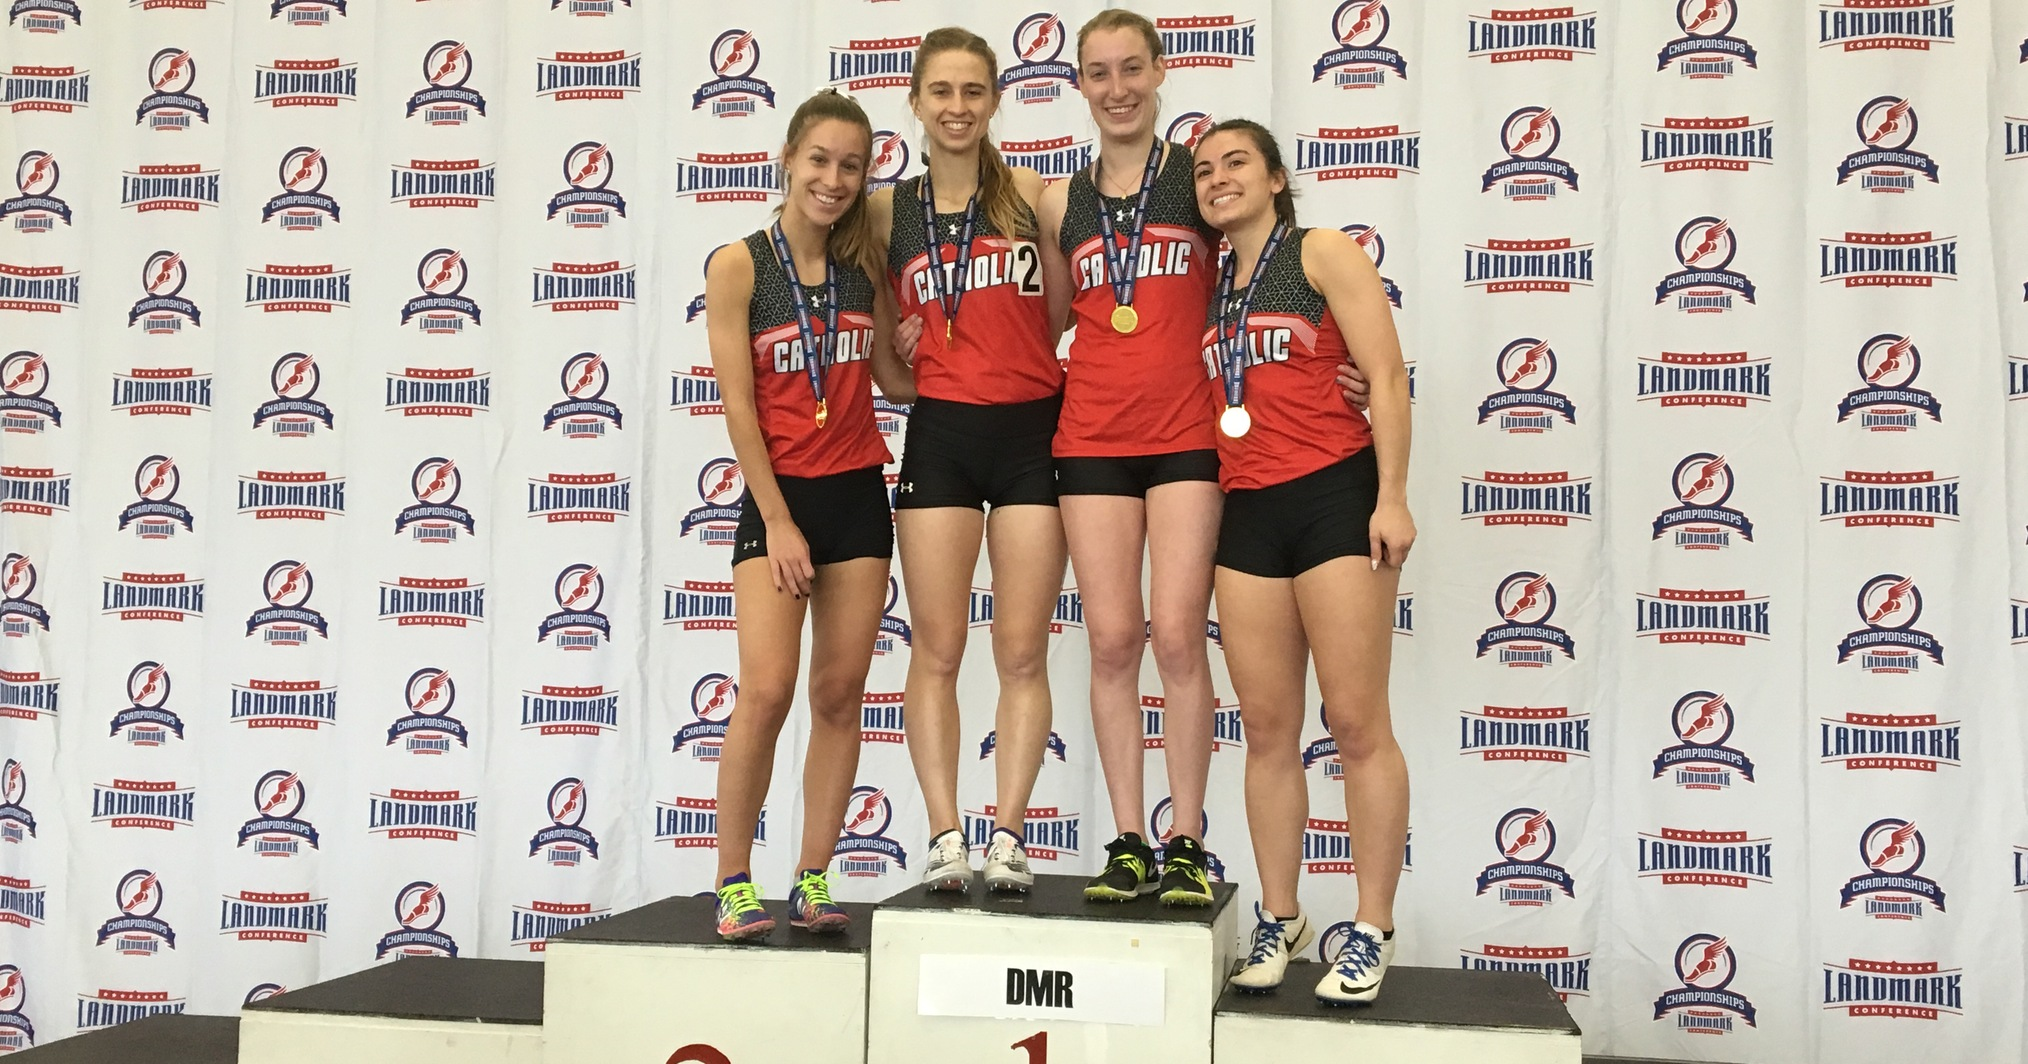 Cardinals Place Fourth at Landmark Indoor Championships